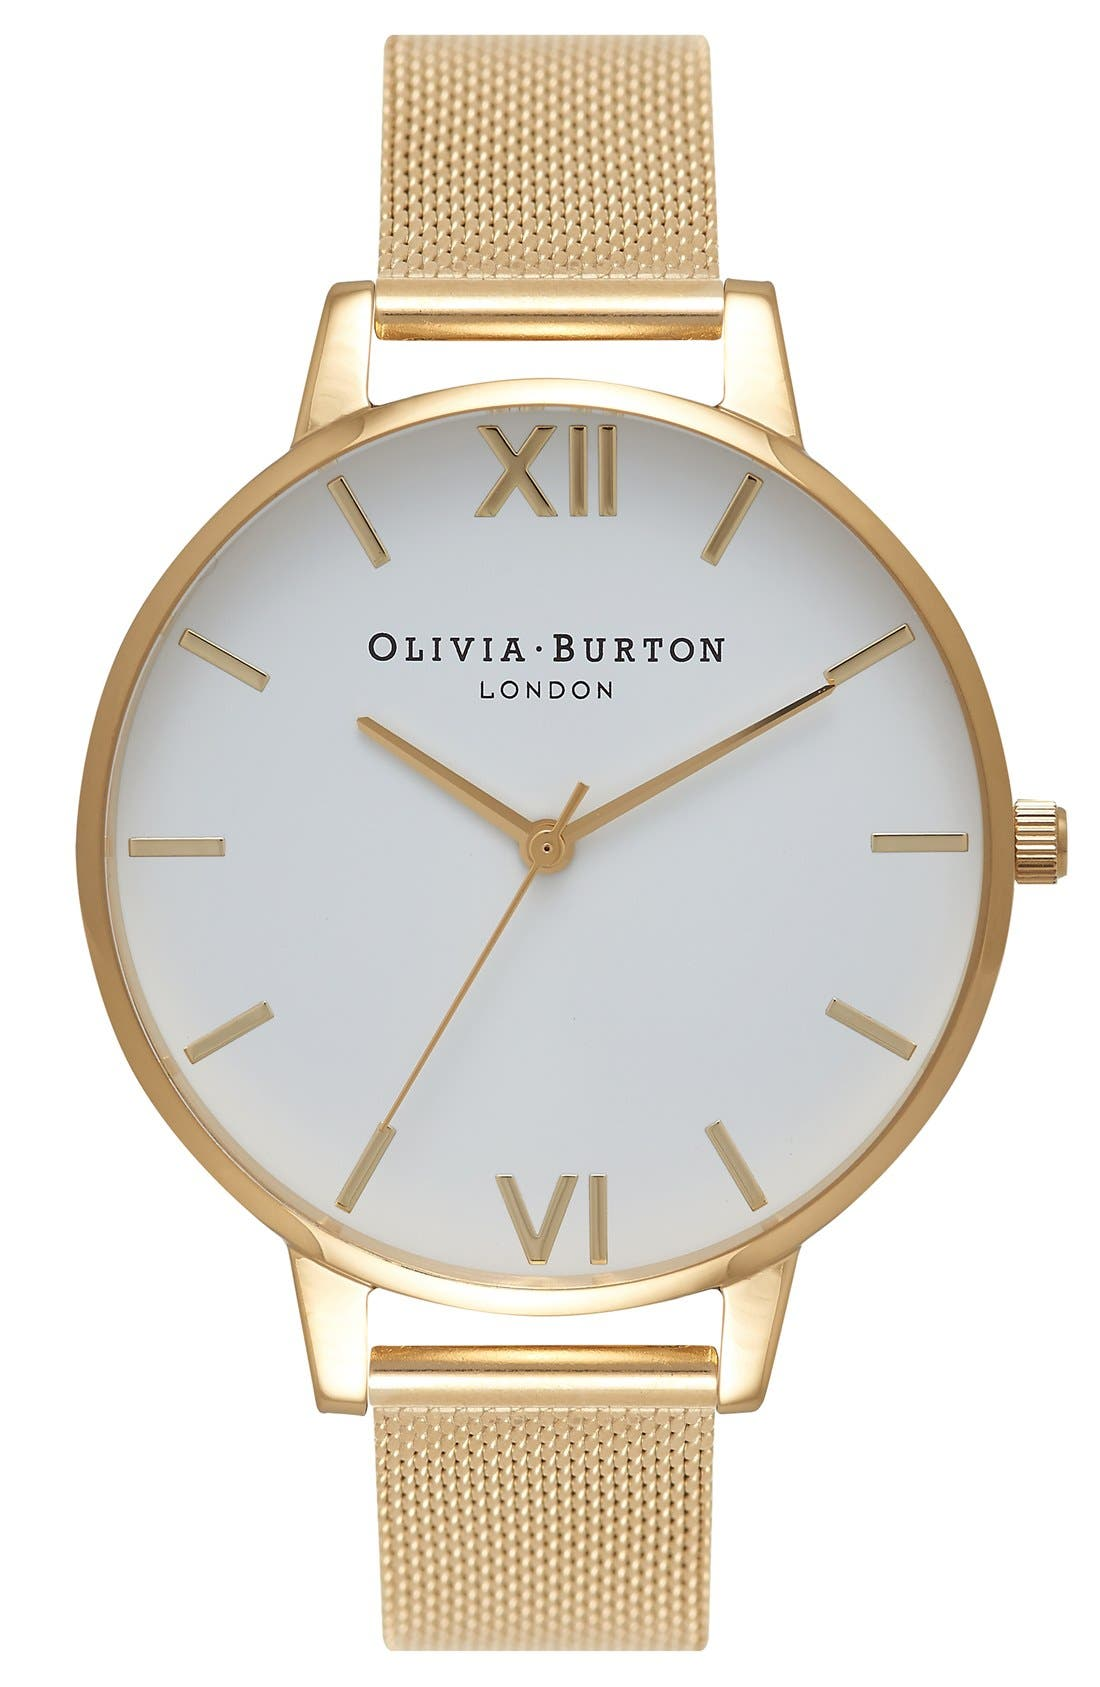 fdd8255f69d58 Women s OLIVIA BURTON Watches